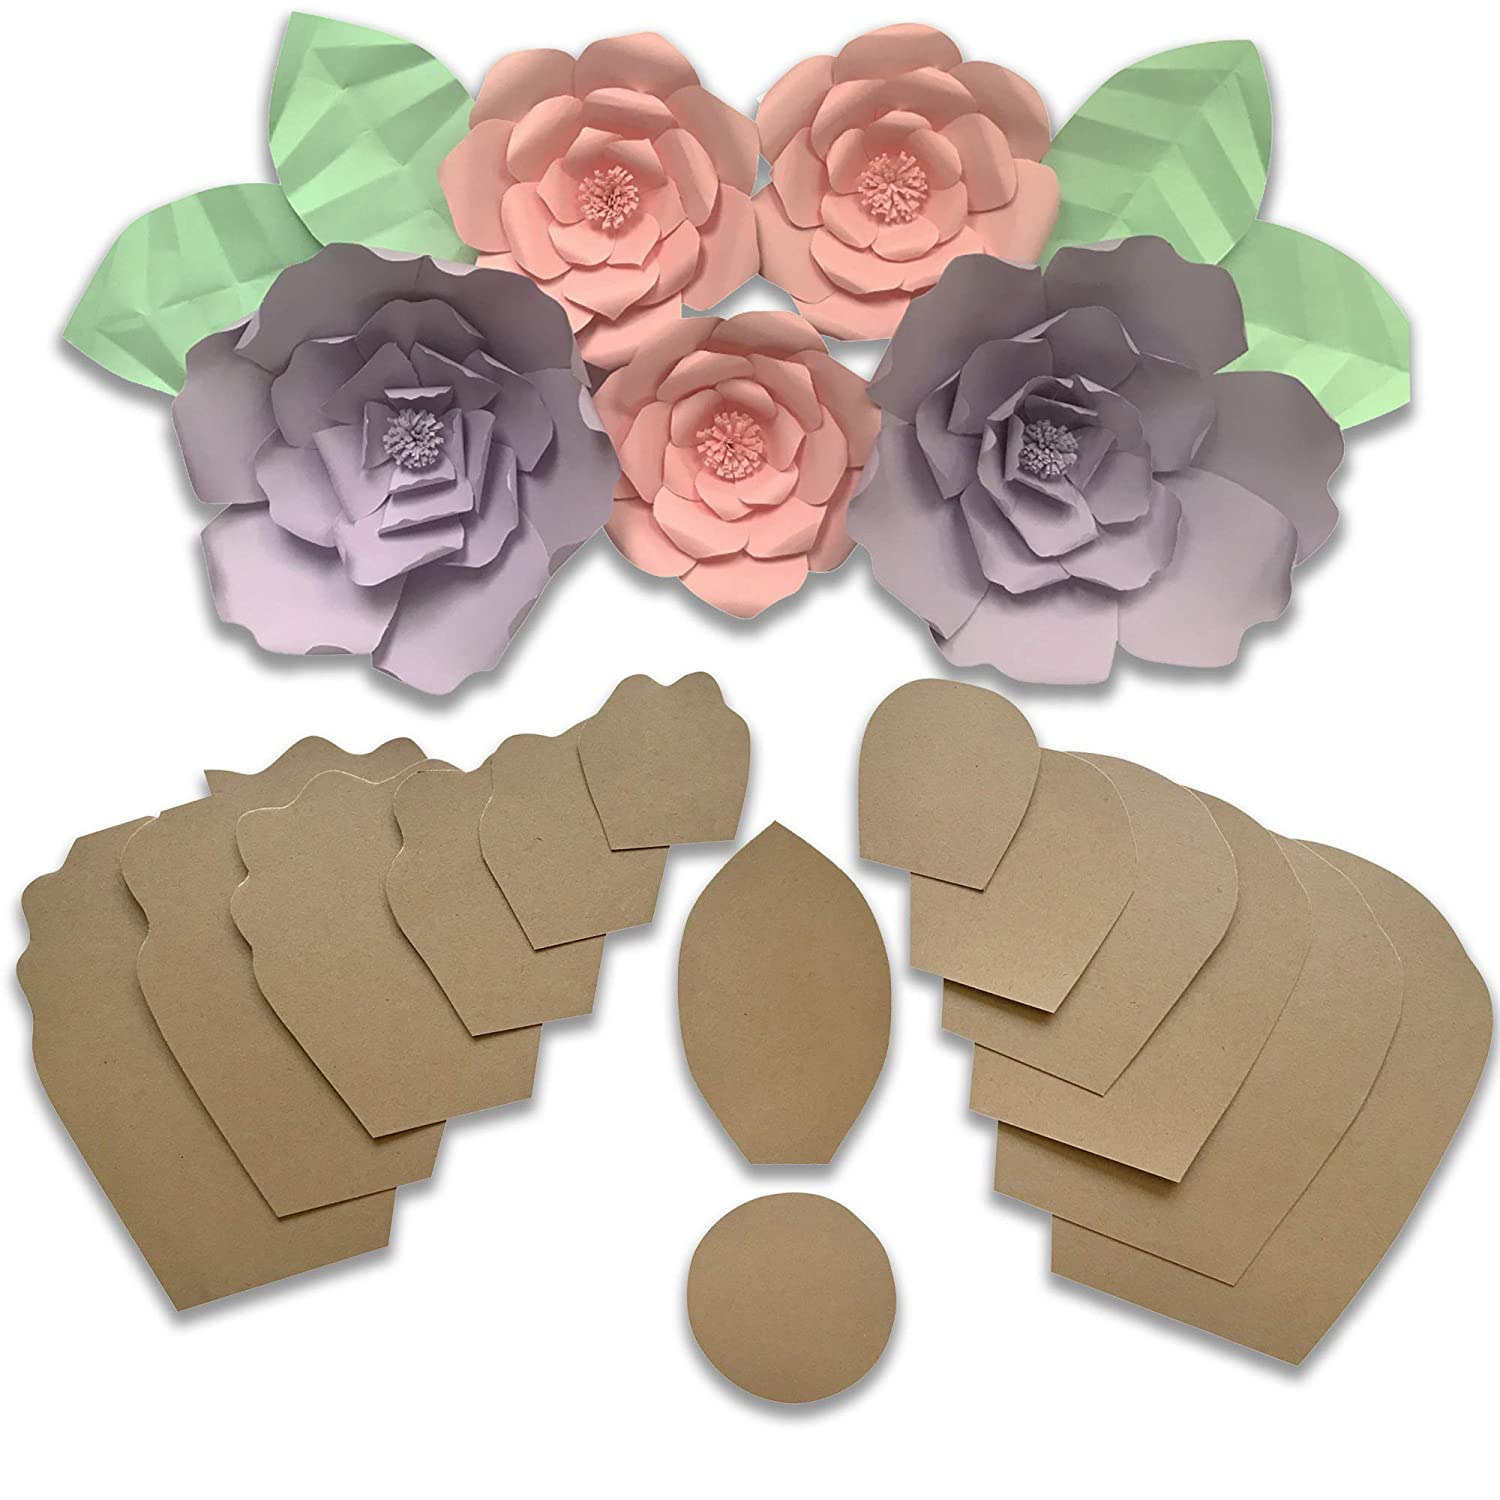 Two Pack Rose Peony Paper Flower Template Kit Free Leaf Template Paper Flowers Decorations For Wall Make Unlimited Flowers Diy Do It